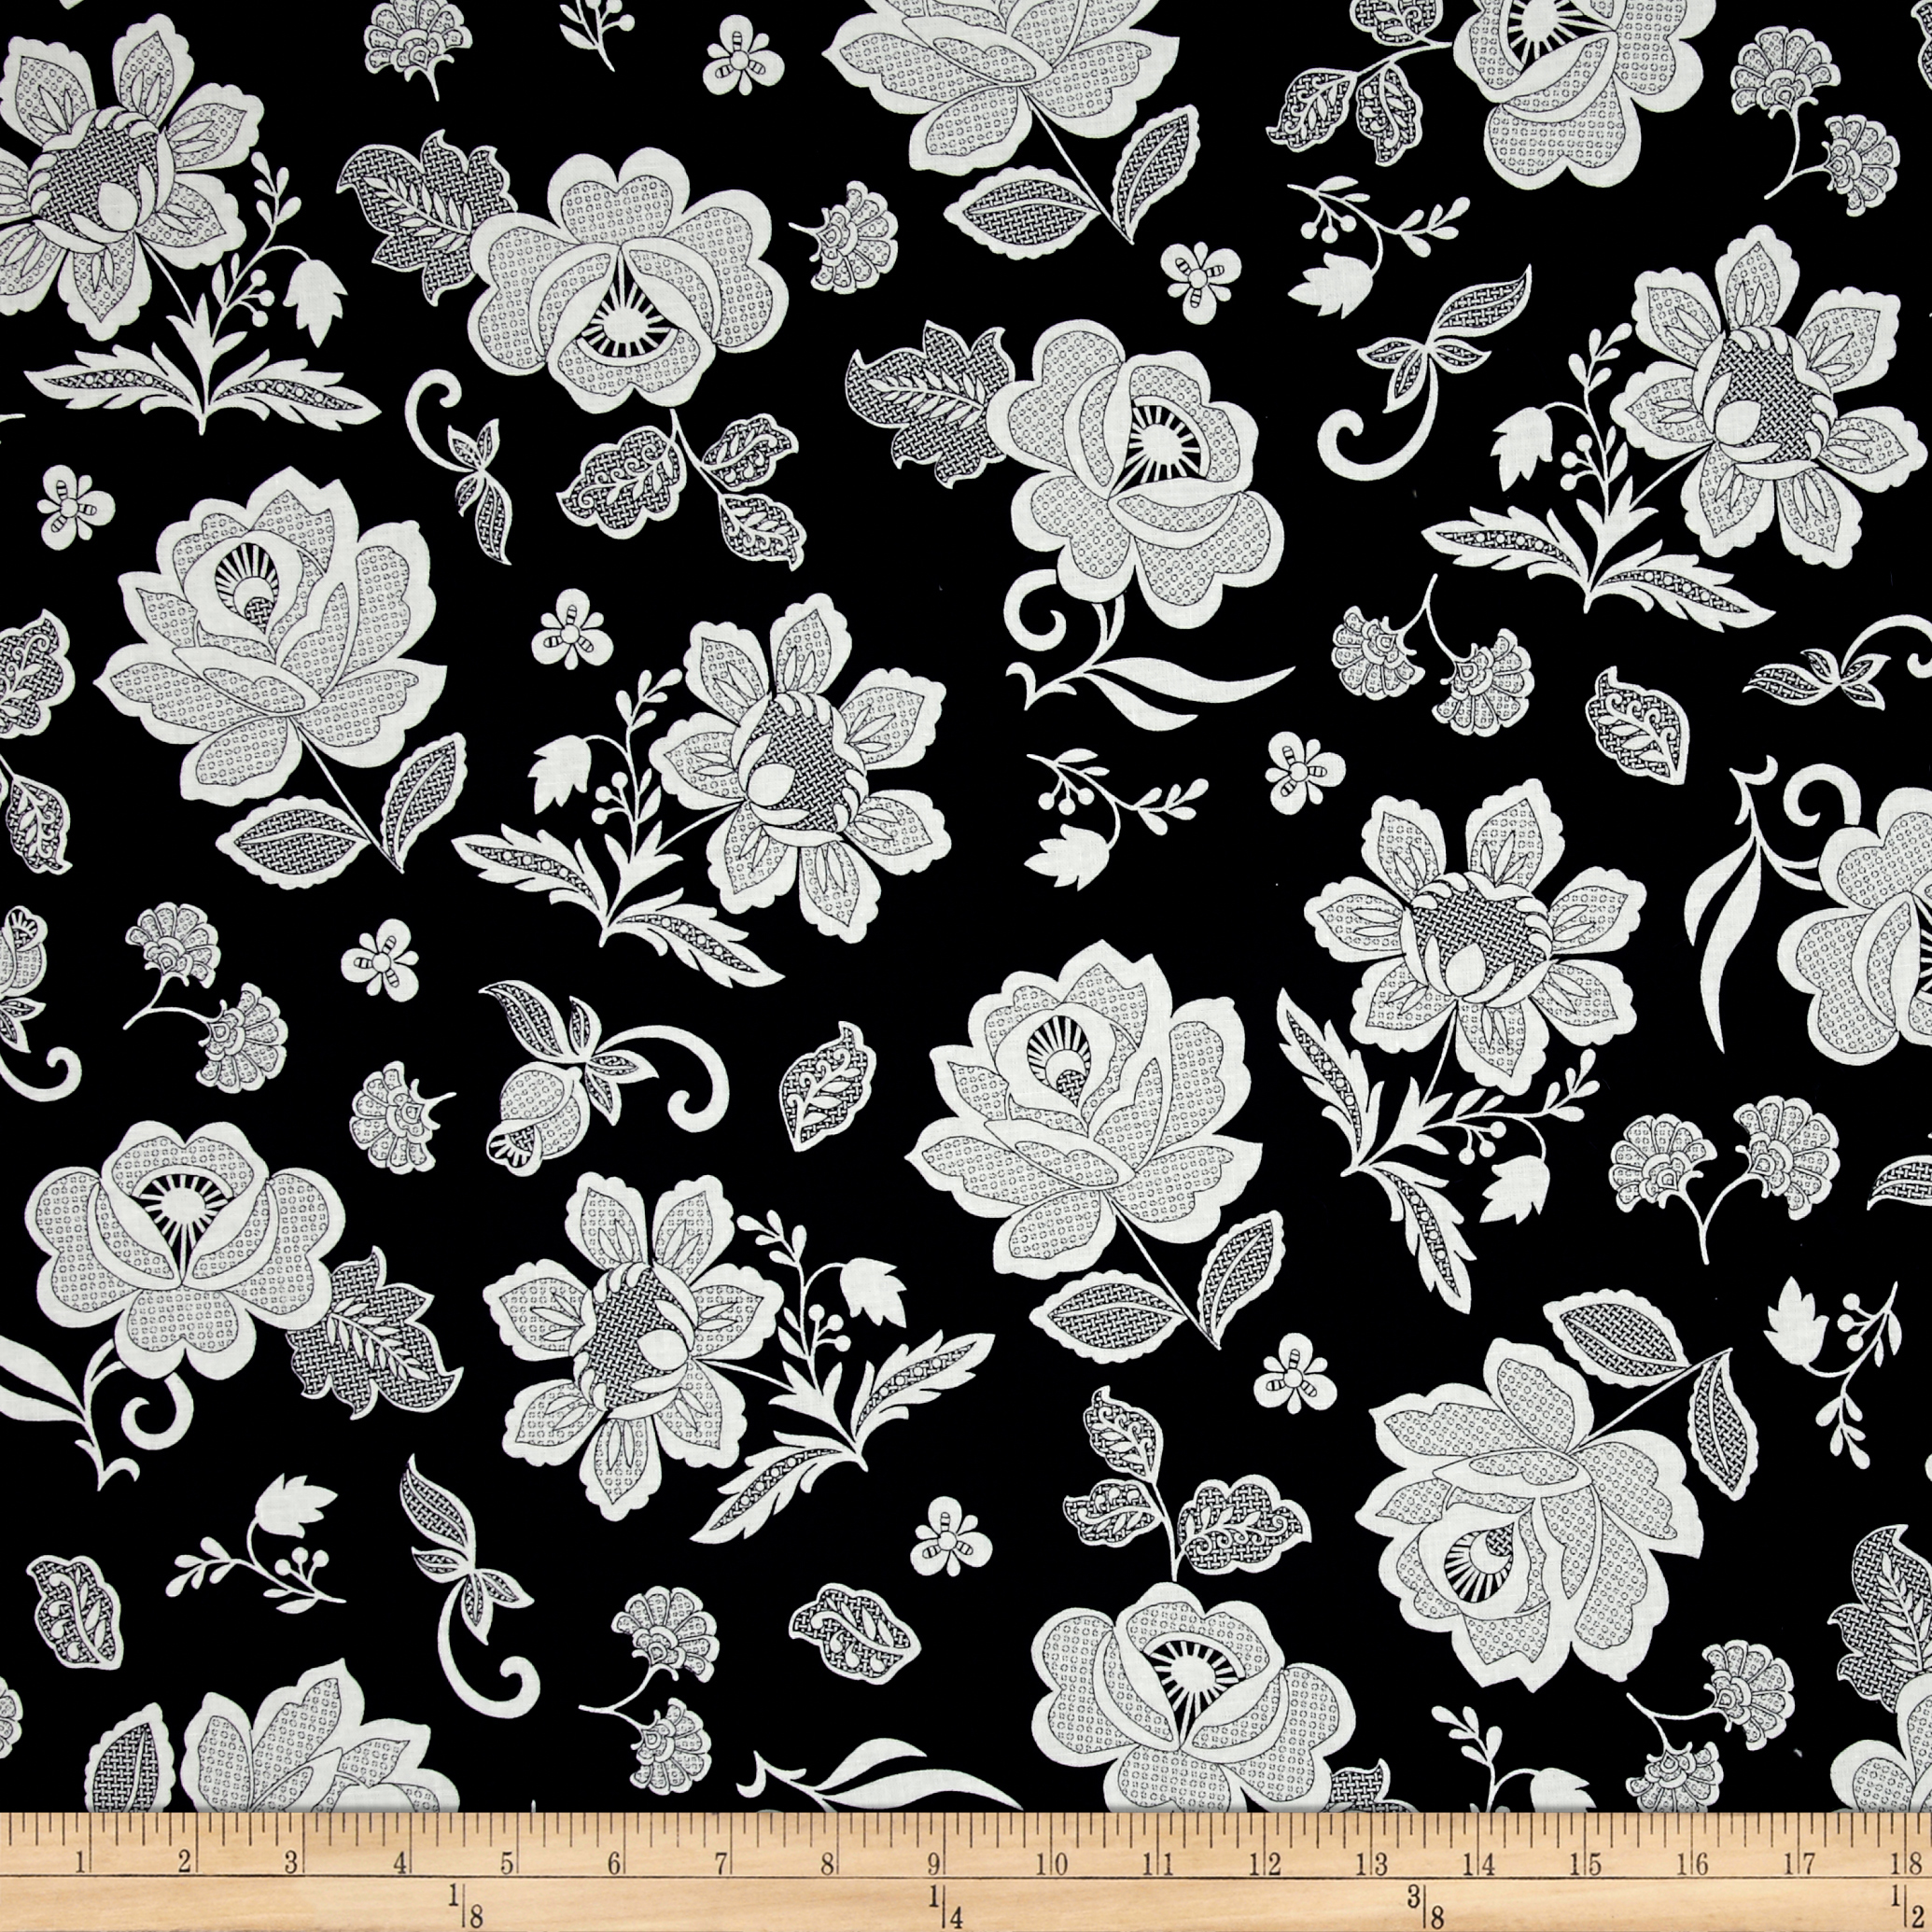 Hoffman Simply Eclectic Lace Floral Indigo Fabric by Hoffman of California in USA